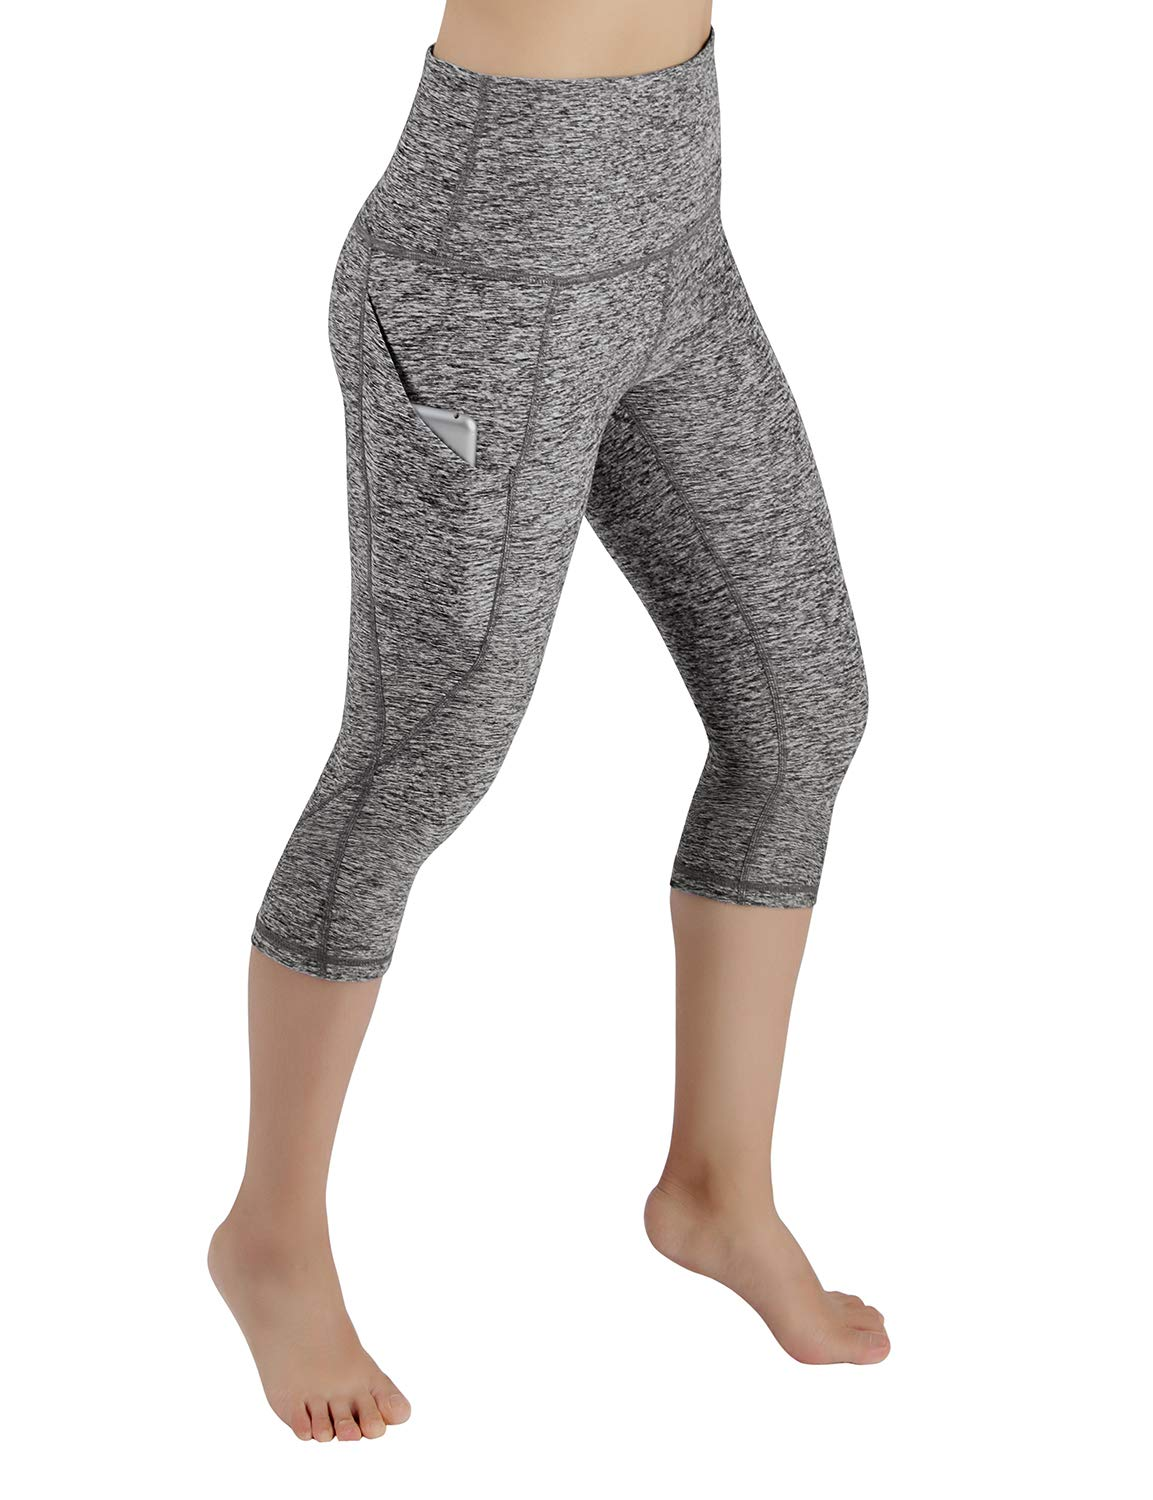 ODODOS High Waist Out Pocket Yoga Capris Pants Tummy Control Workout Running 4 Way Stretch Yoga Leggings,GrayHeather,X-Small by ODODOS (Image #1)